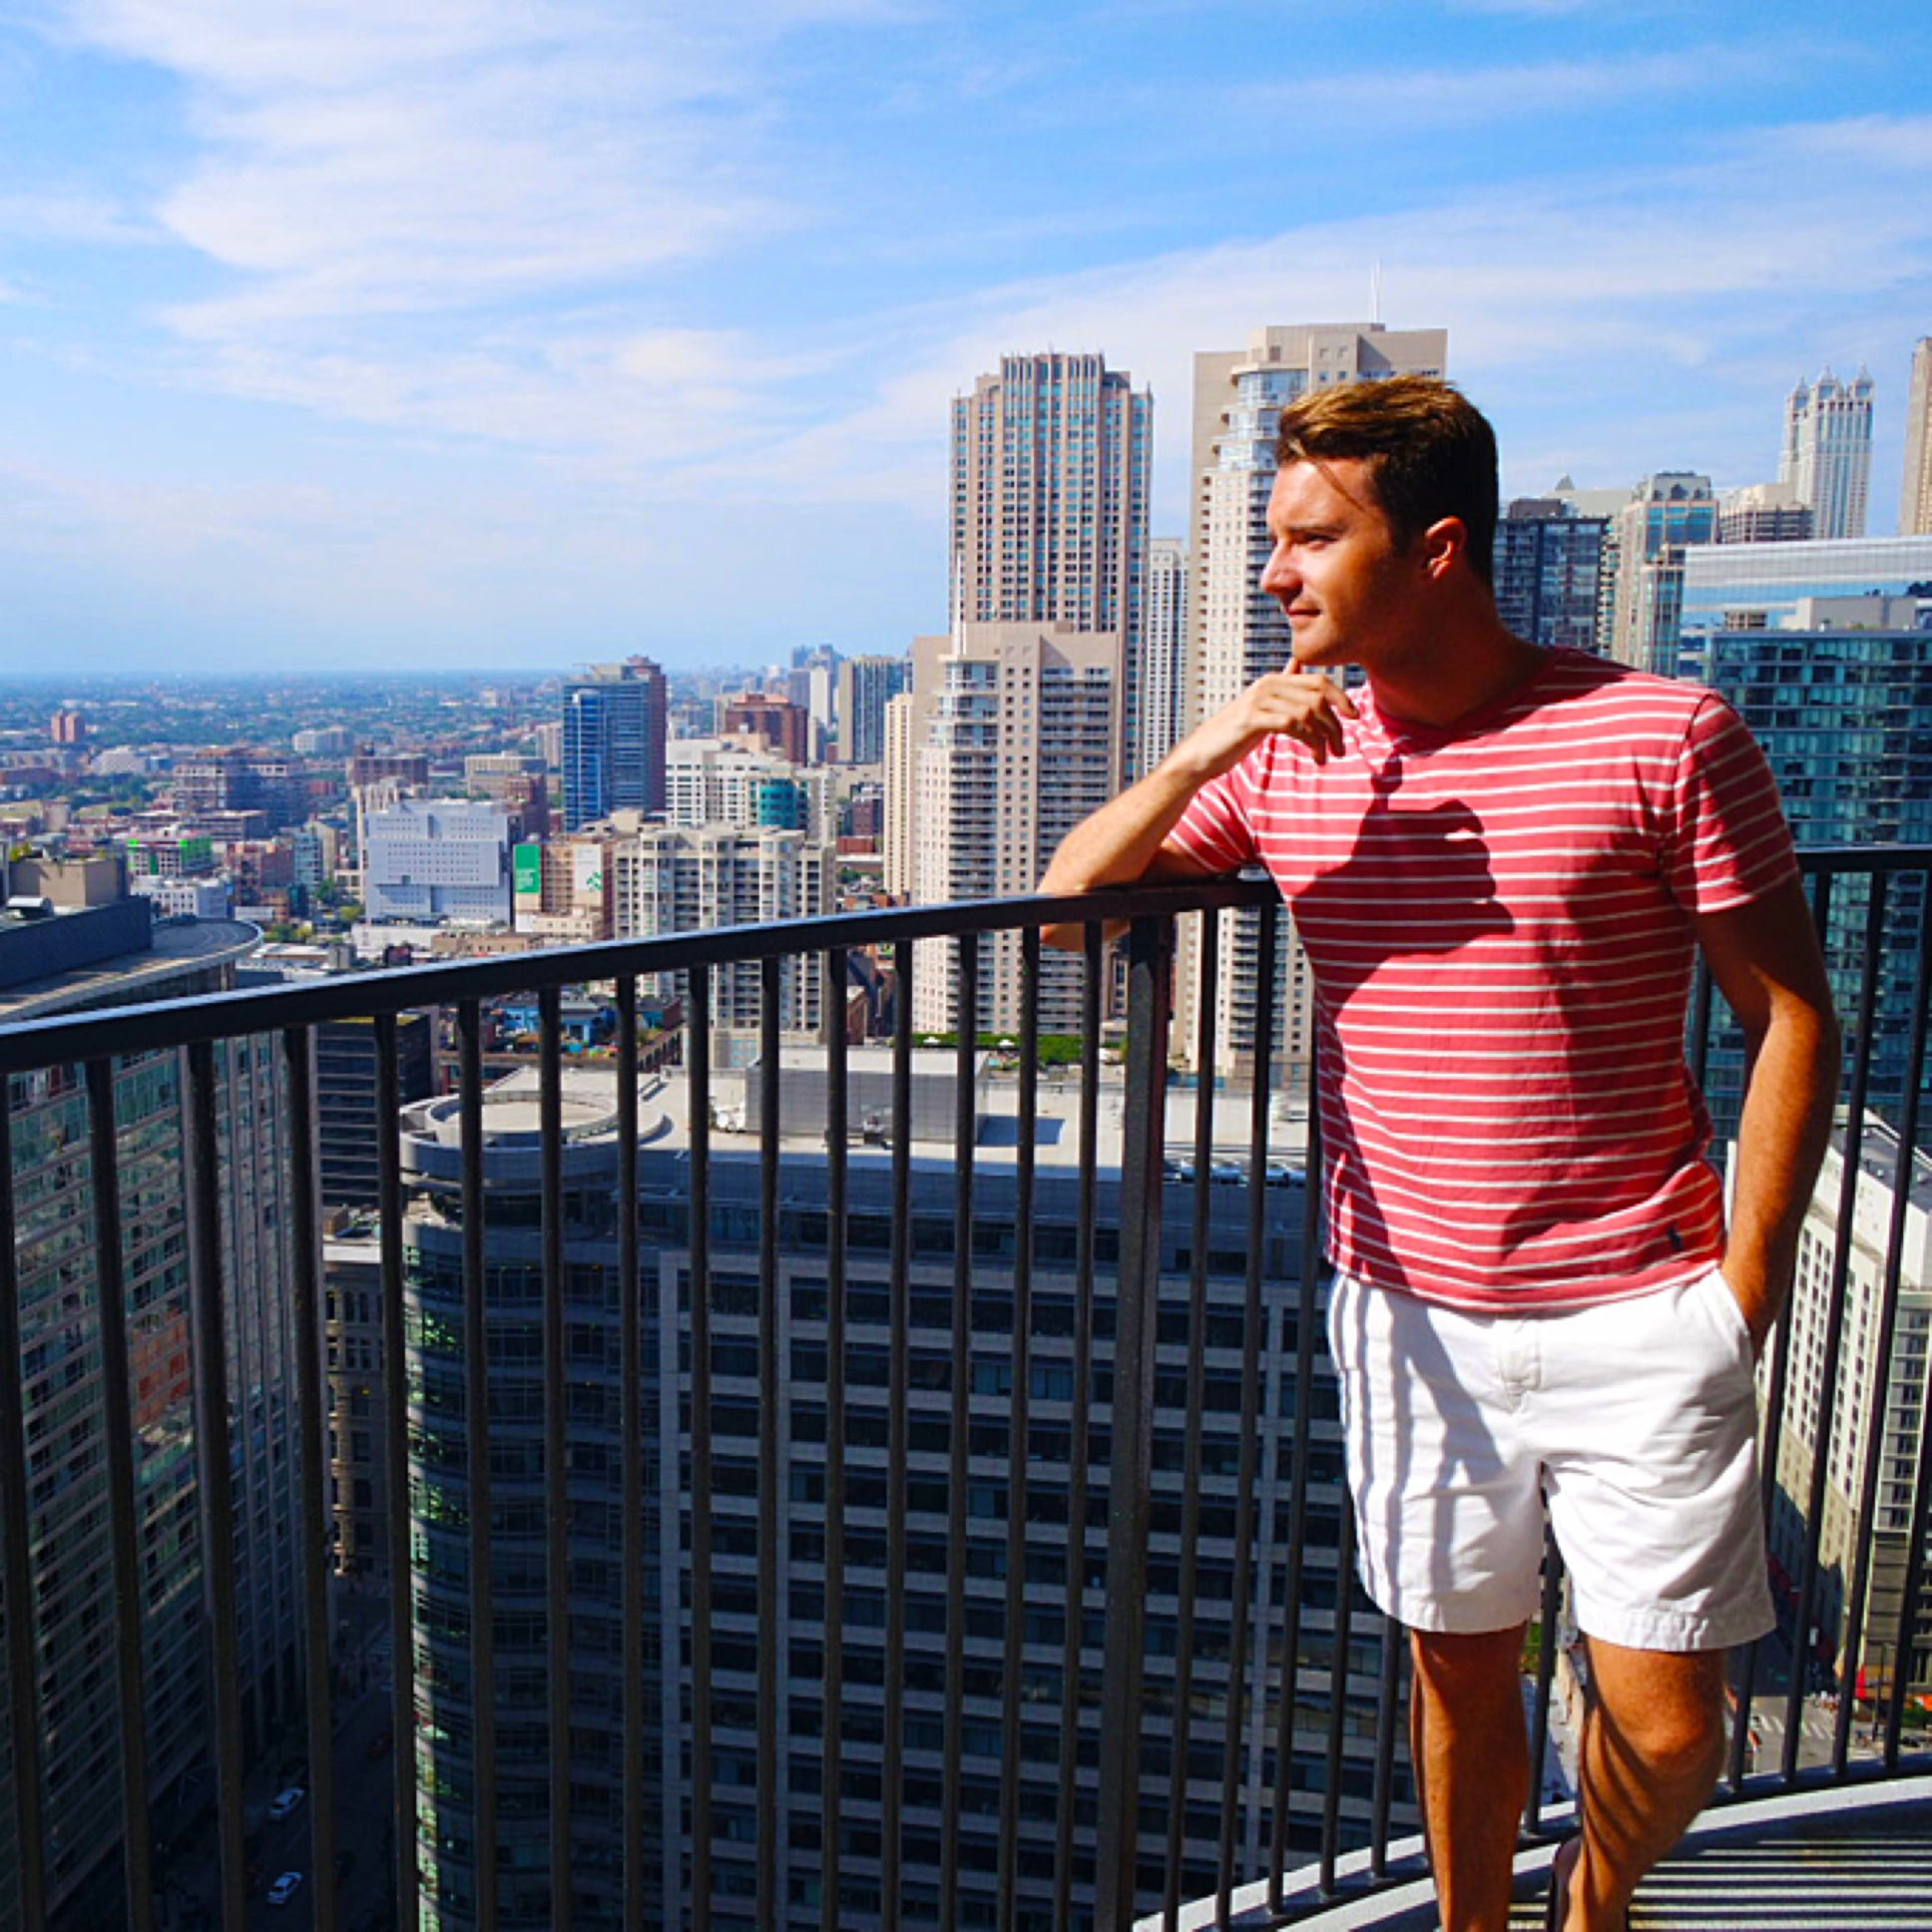 Hamptons to Hollywood - Travel Chicago Lifestyle by Kyle Langan